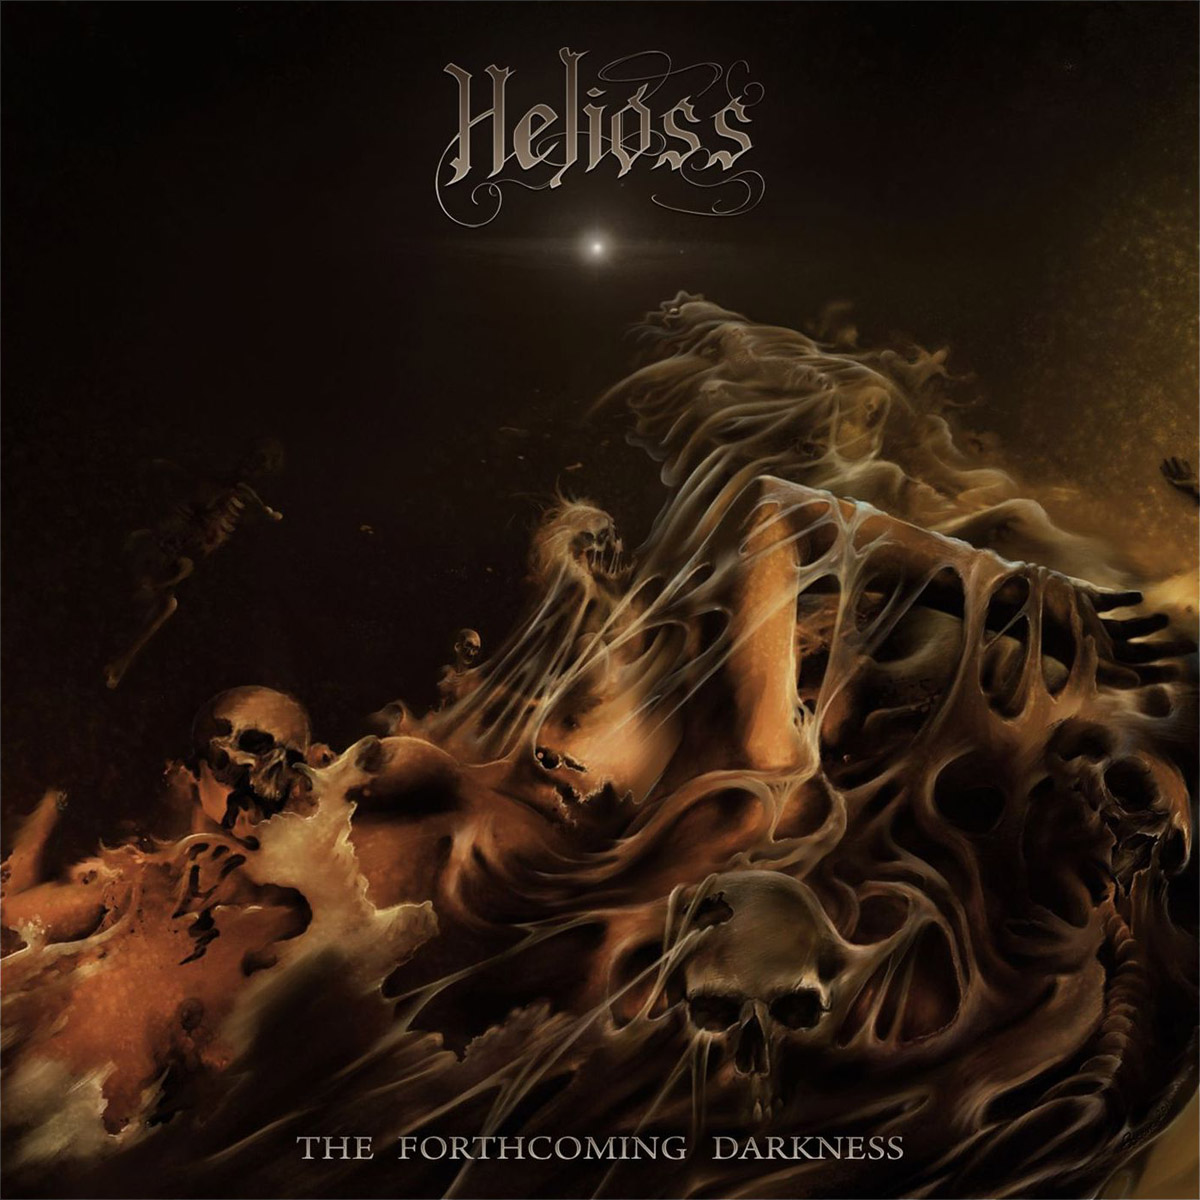 helioss-the-forthcoming-darkness-cd